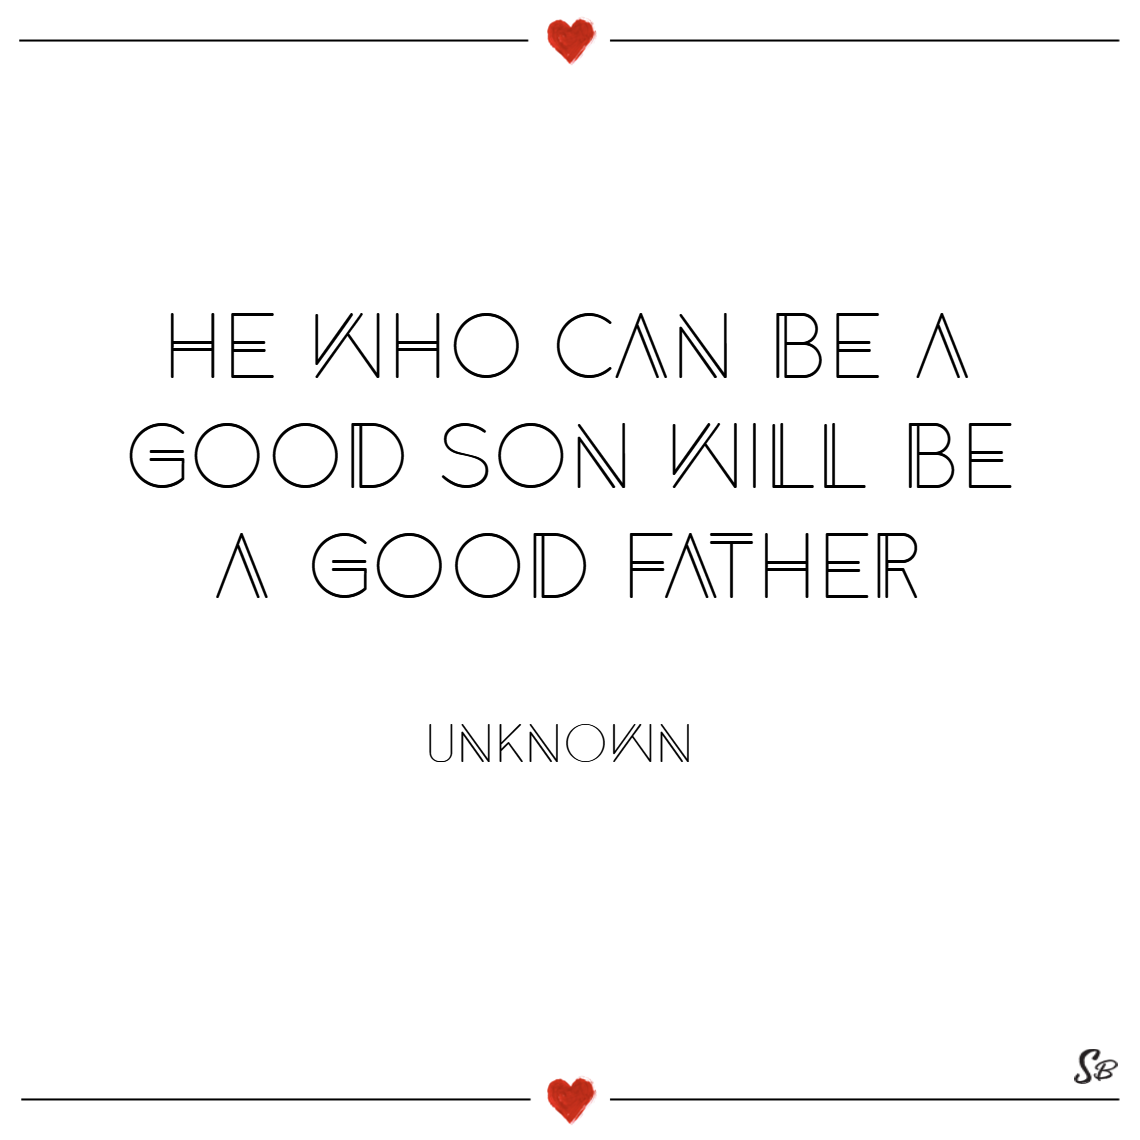 He who can be a good son will be a good father. – unknown